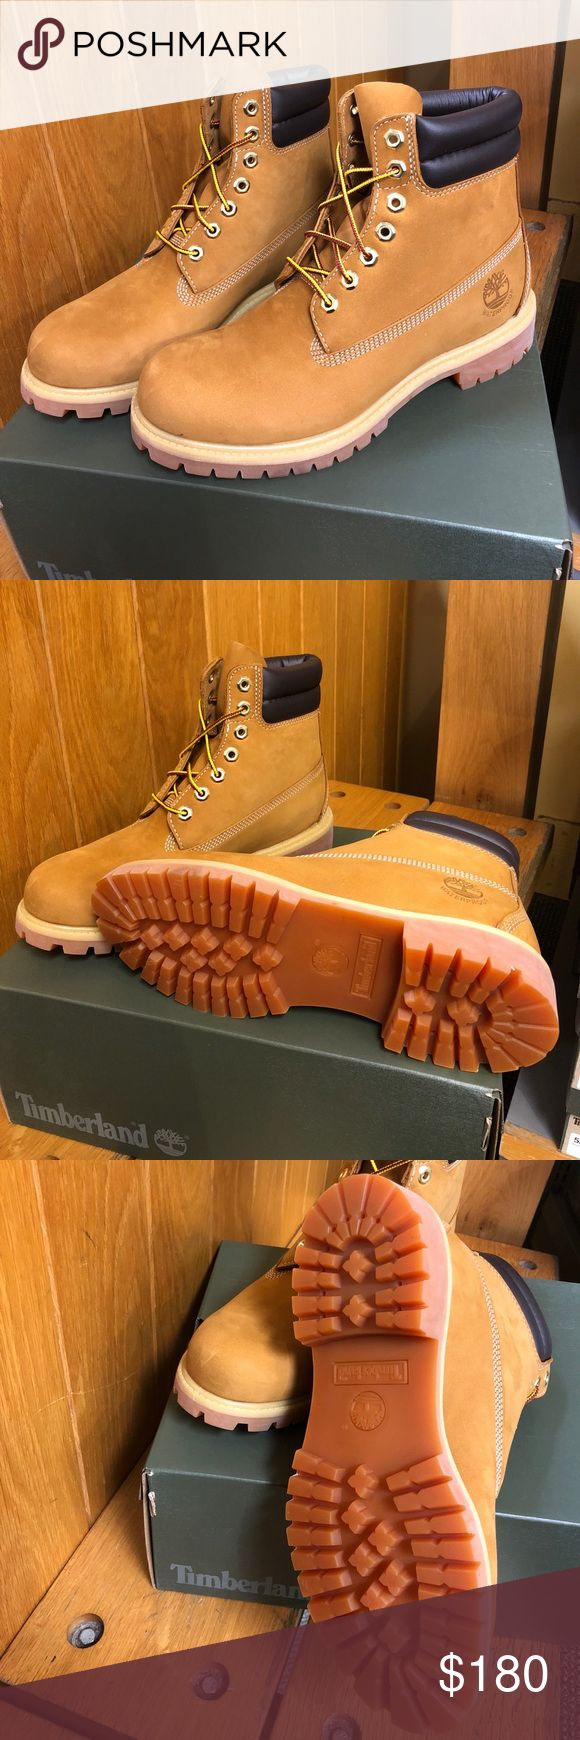 Men's Timberland Boots Premium waterproof leather uppers provide protection to keep feet dry and comfortable in any weather Seam-sealed construction Leather lining for comfort and durability Nylon laces Rustproof hardware 200 grams of PrimaLoft® insulation Timberland Shoes Boots